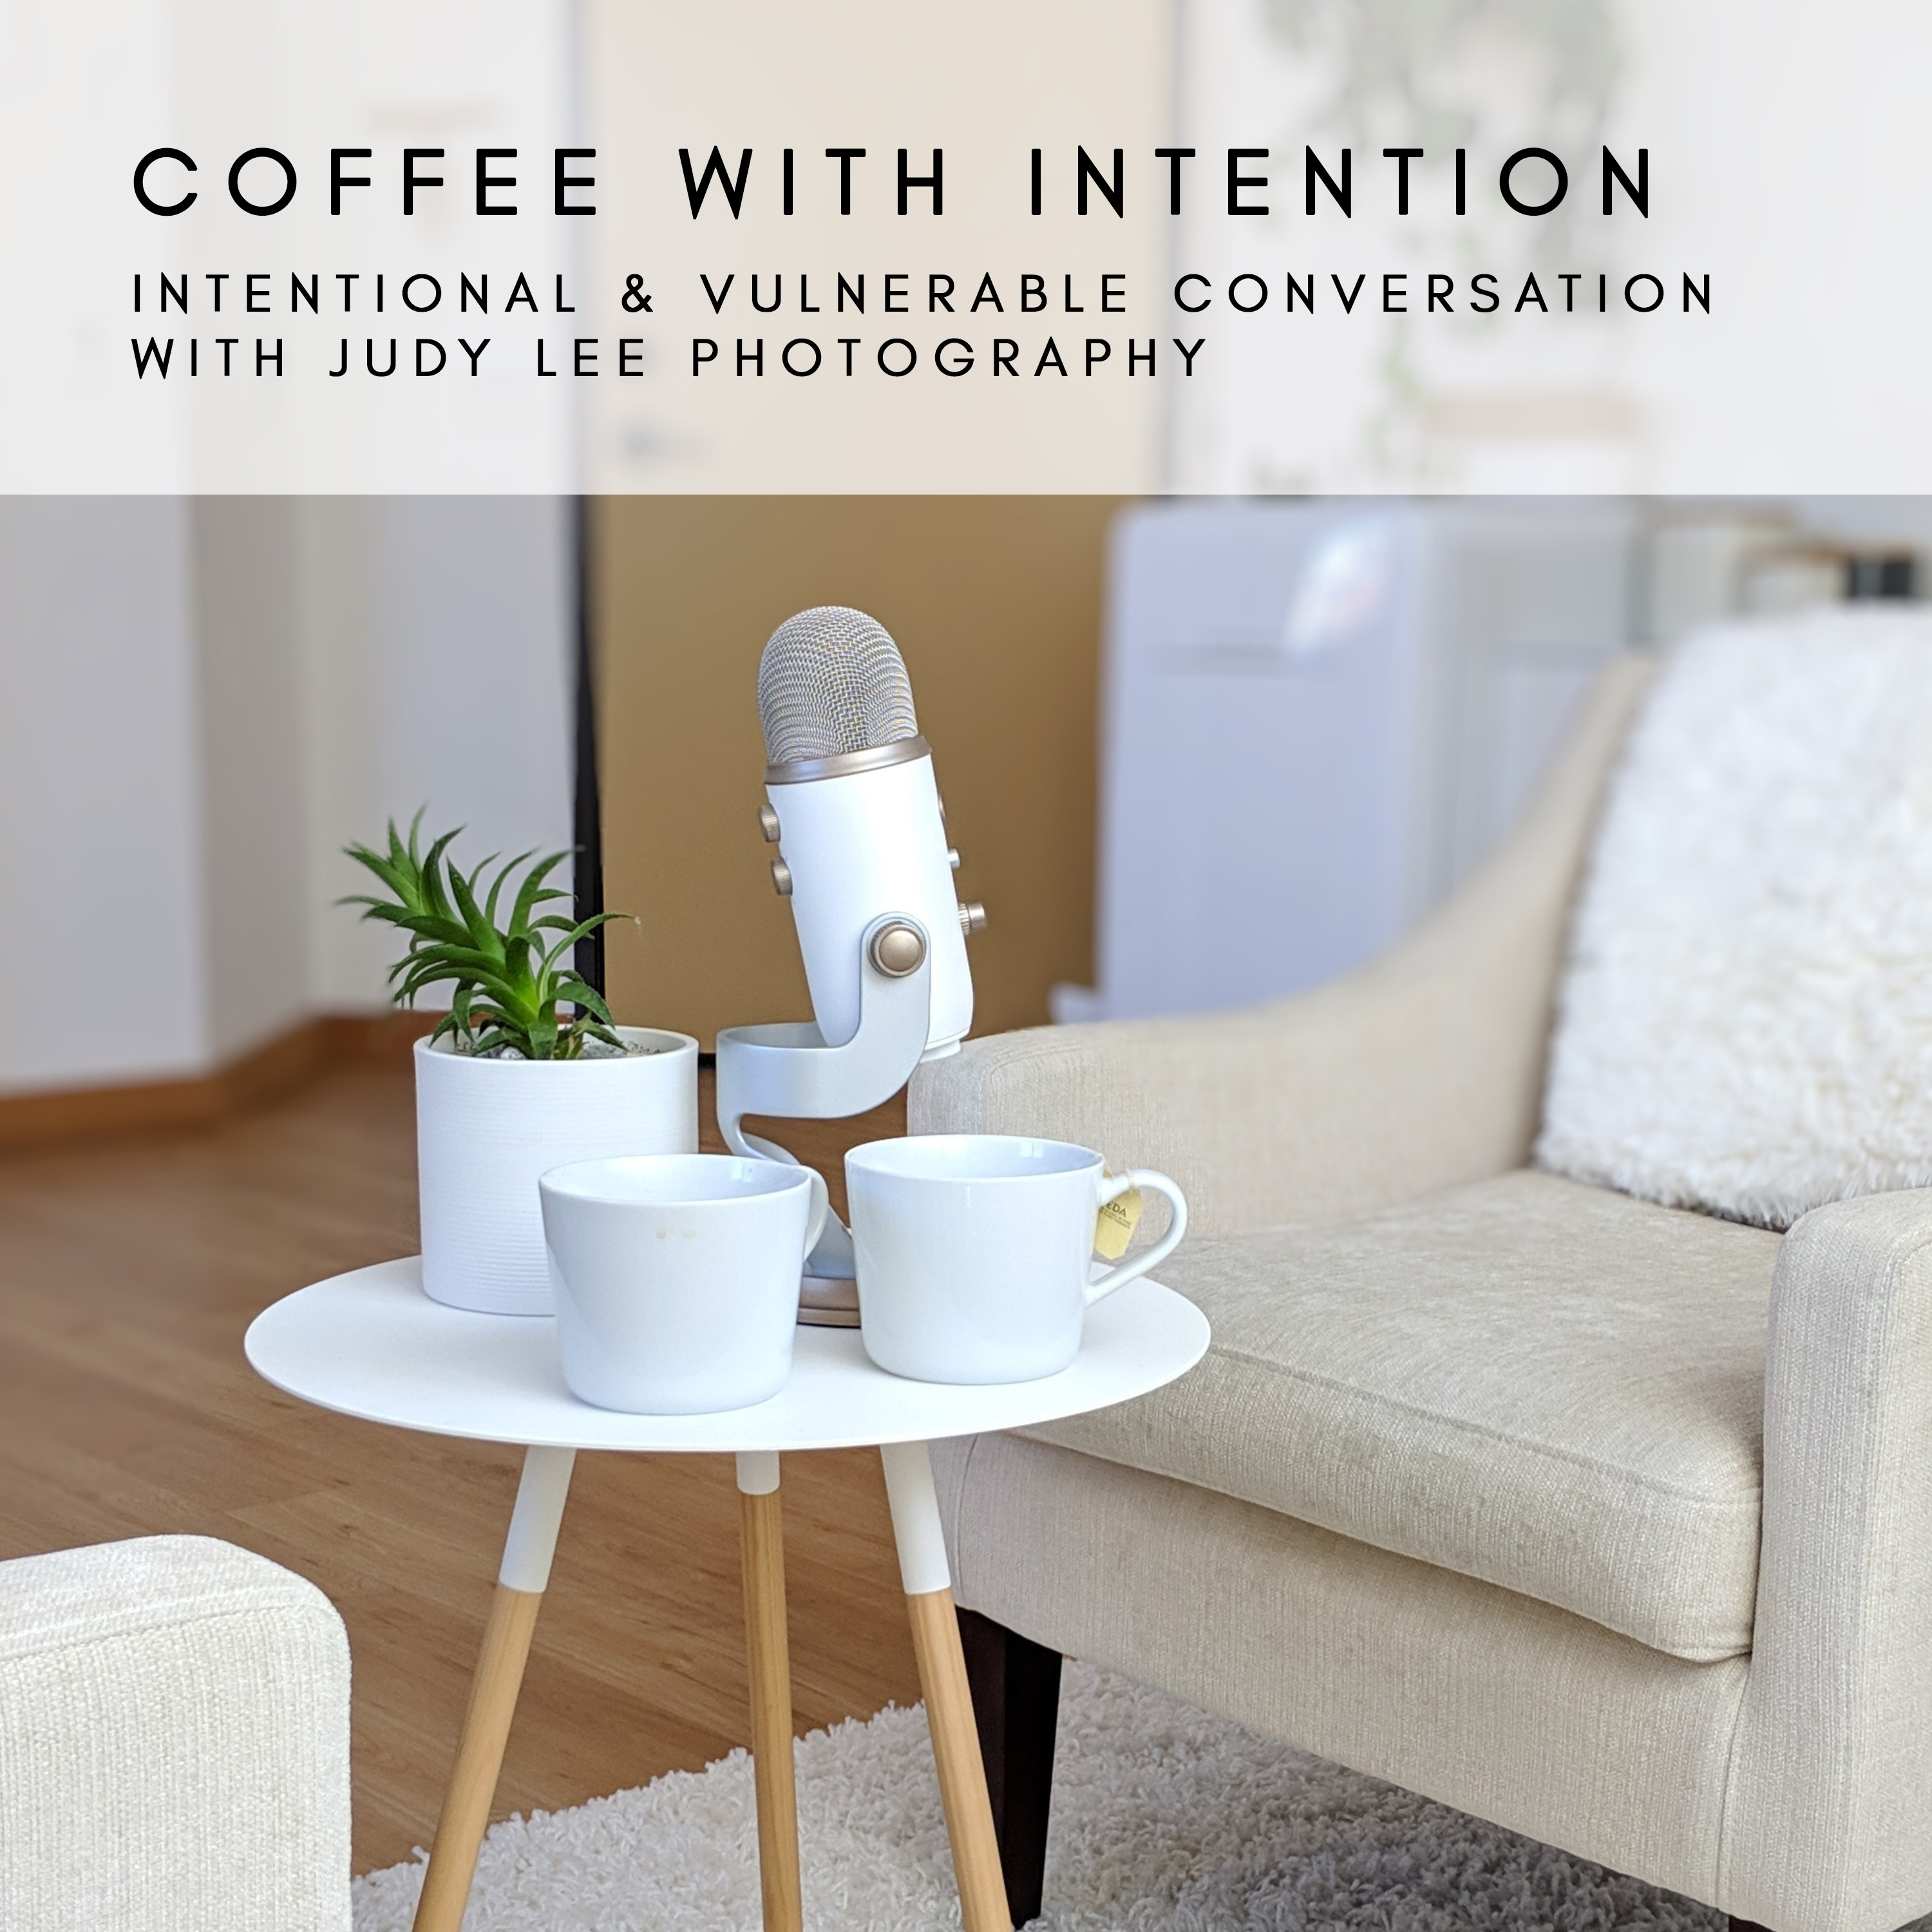 Coffee with Intention